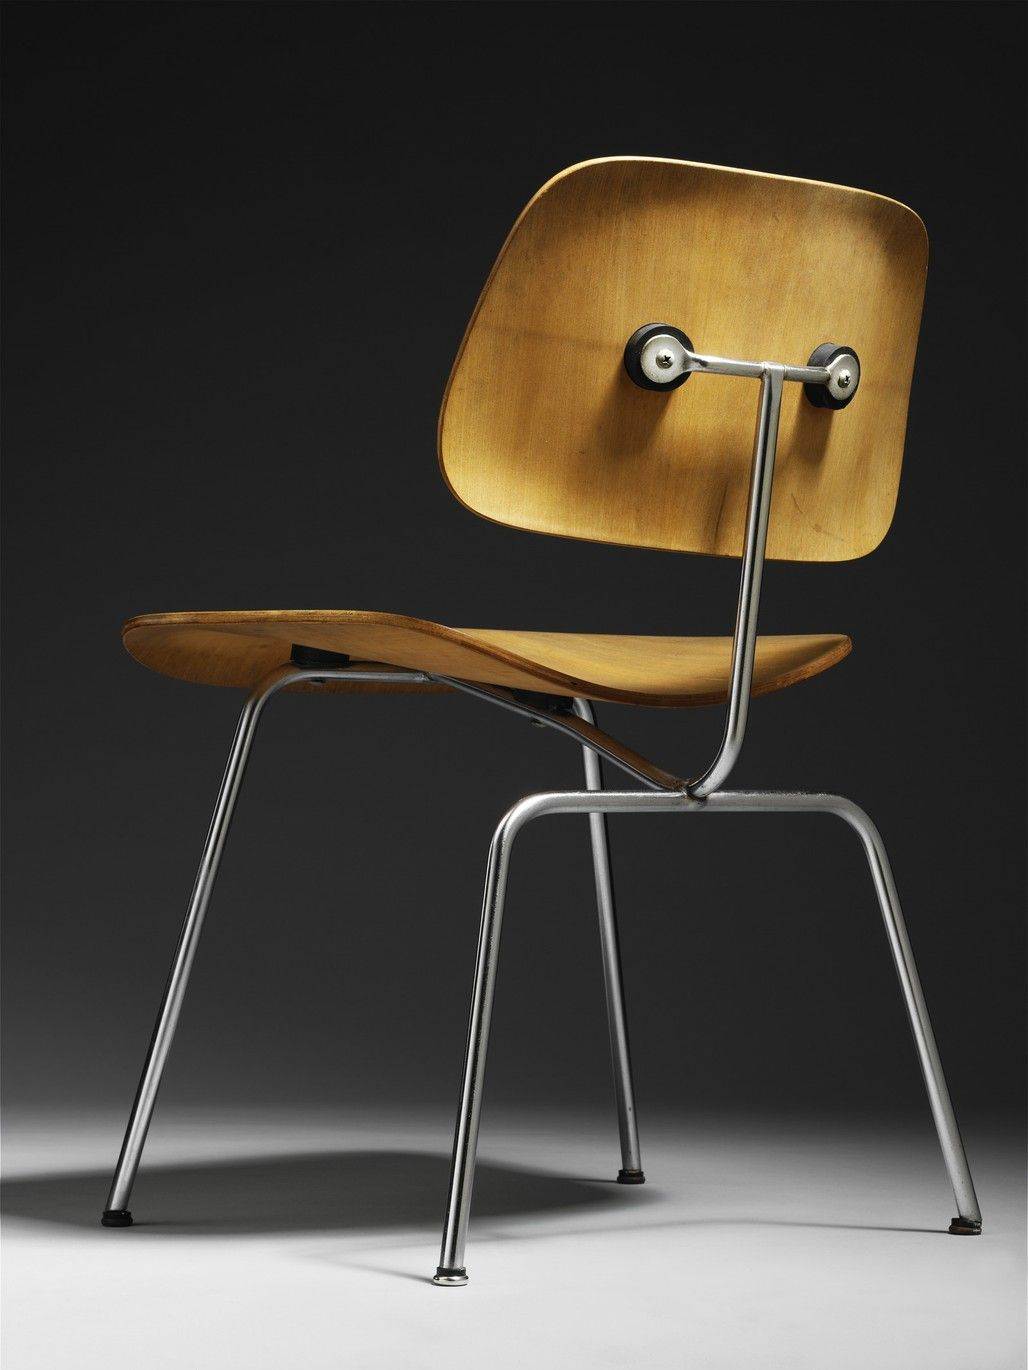 Revisit Plywood S Eclectic History In This Upcoming - Eames Chair London